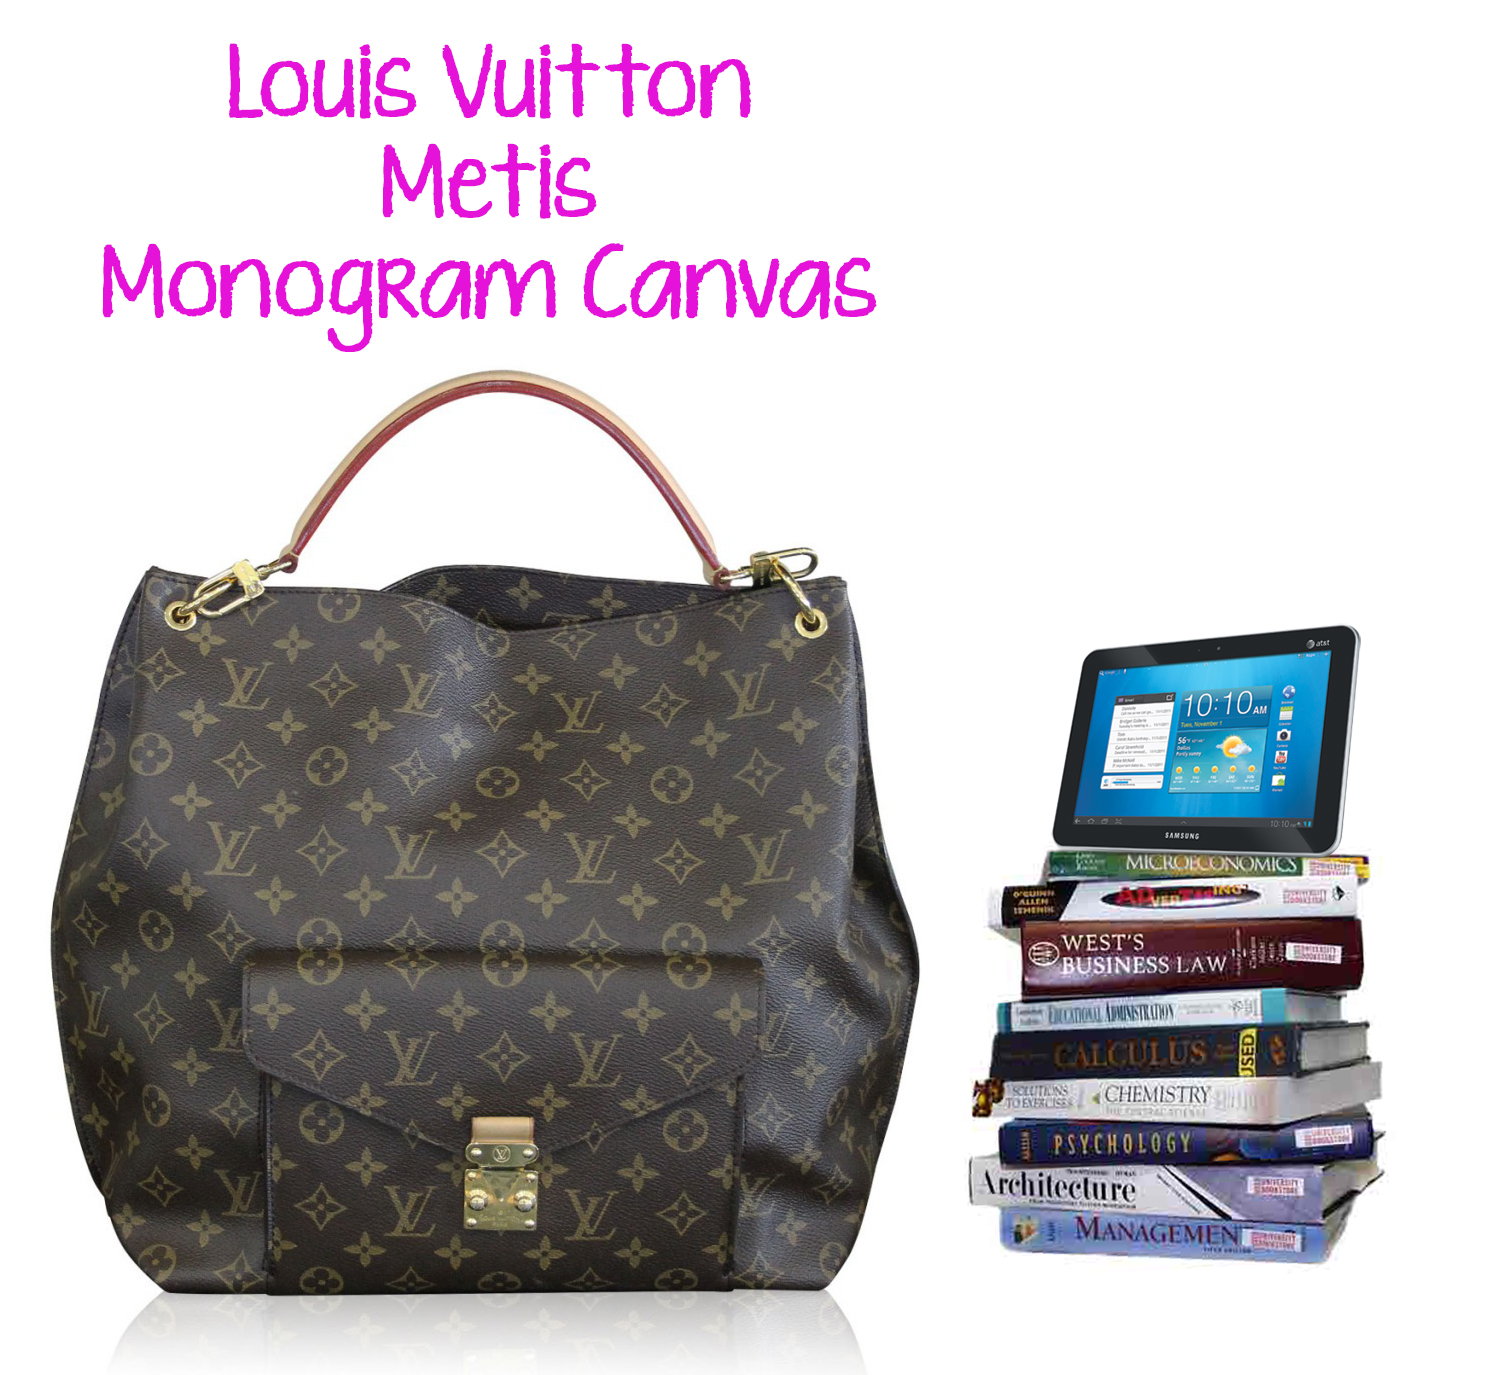 Louis Vuitton Metis Tote Bag